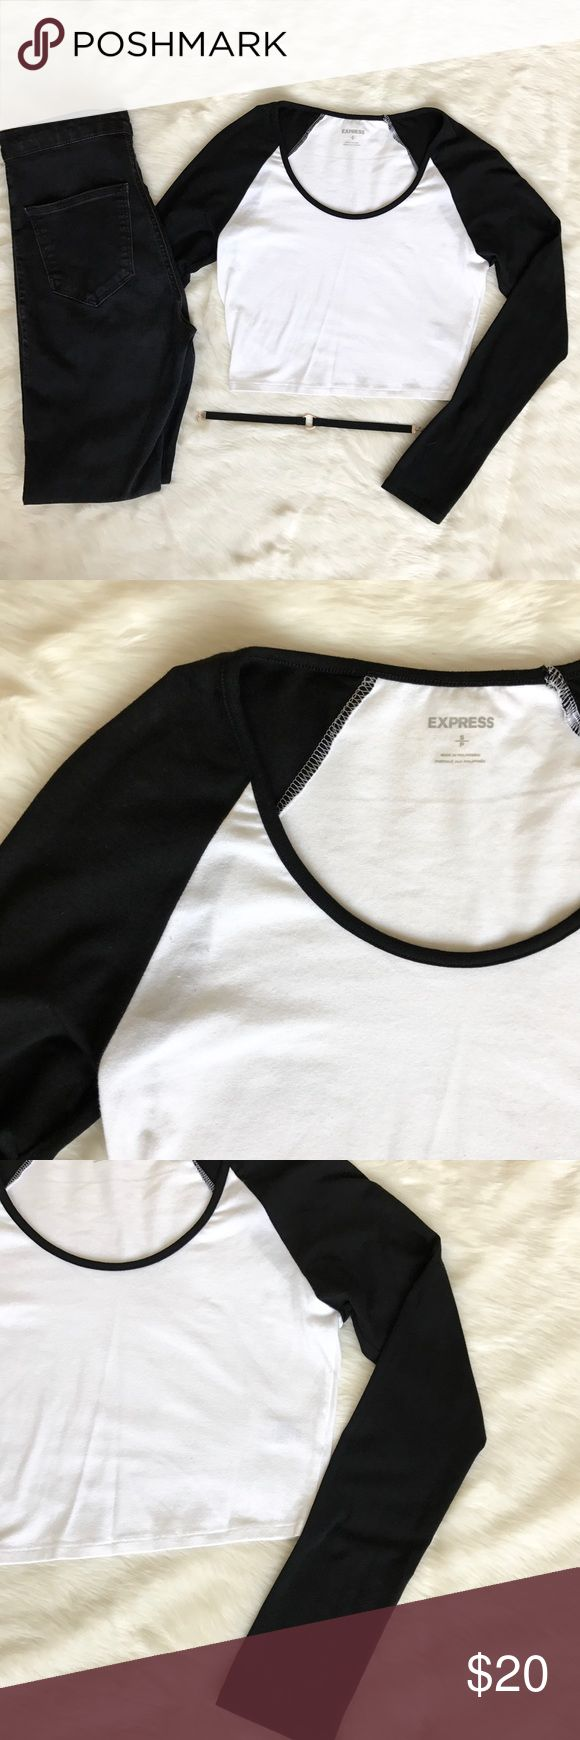 • Express Baseball Crop Top • This super stretchy baseball crop top is perfect for the upcoming baseball spring training season! Brand new, no tags.  • Ask all questions prior to purchase • Bundle & save  • Feel free to make your best offer!  _____  @Cynthaaa - From Me to You Express Tops Crop Tops